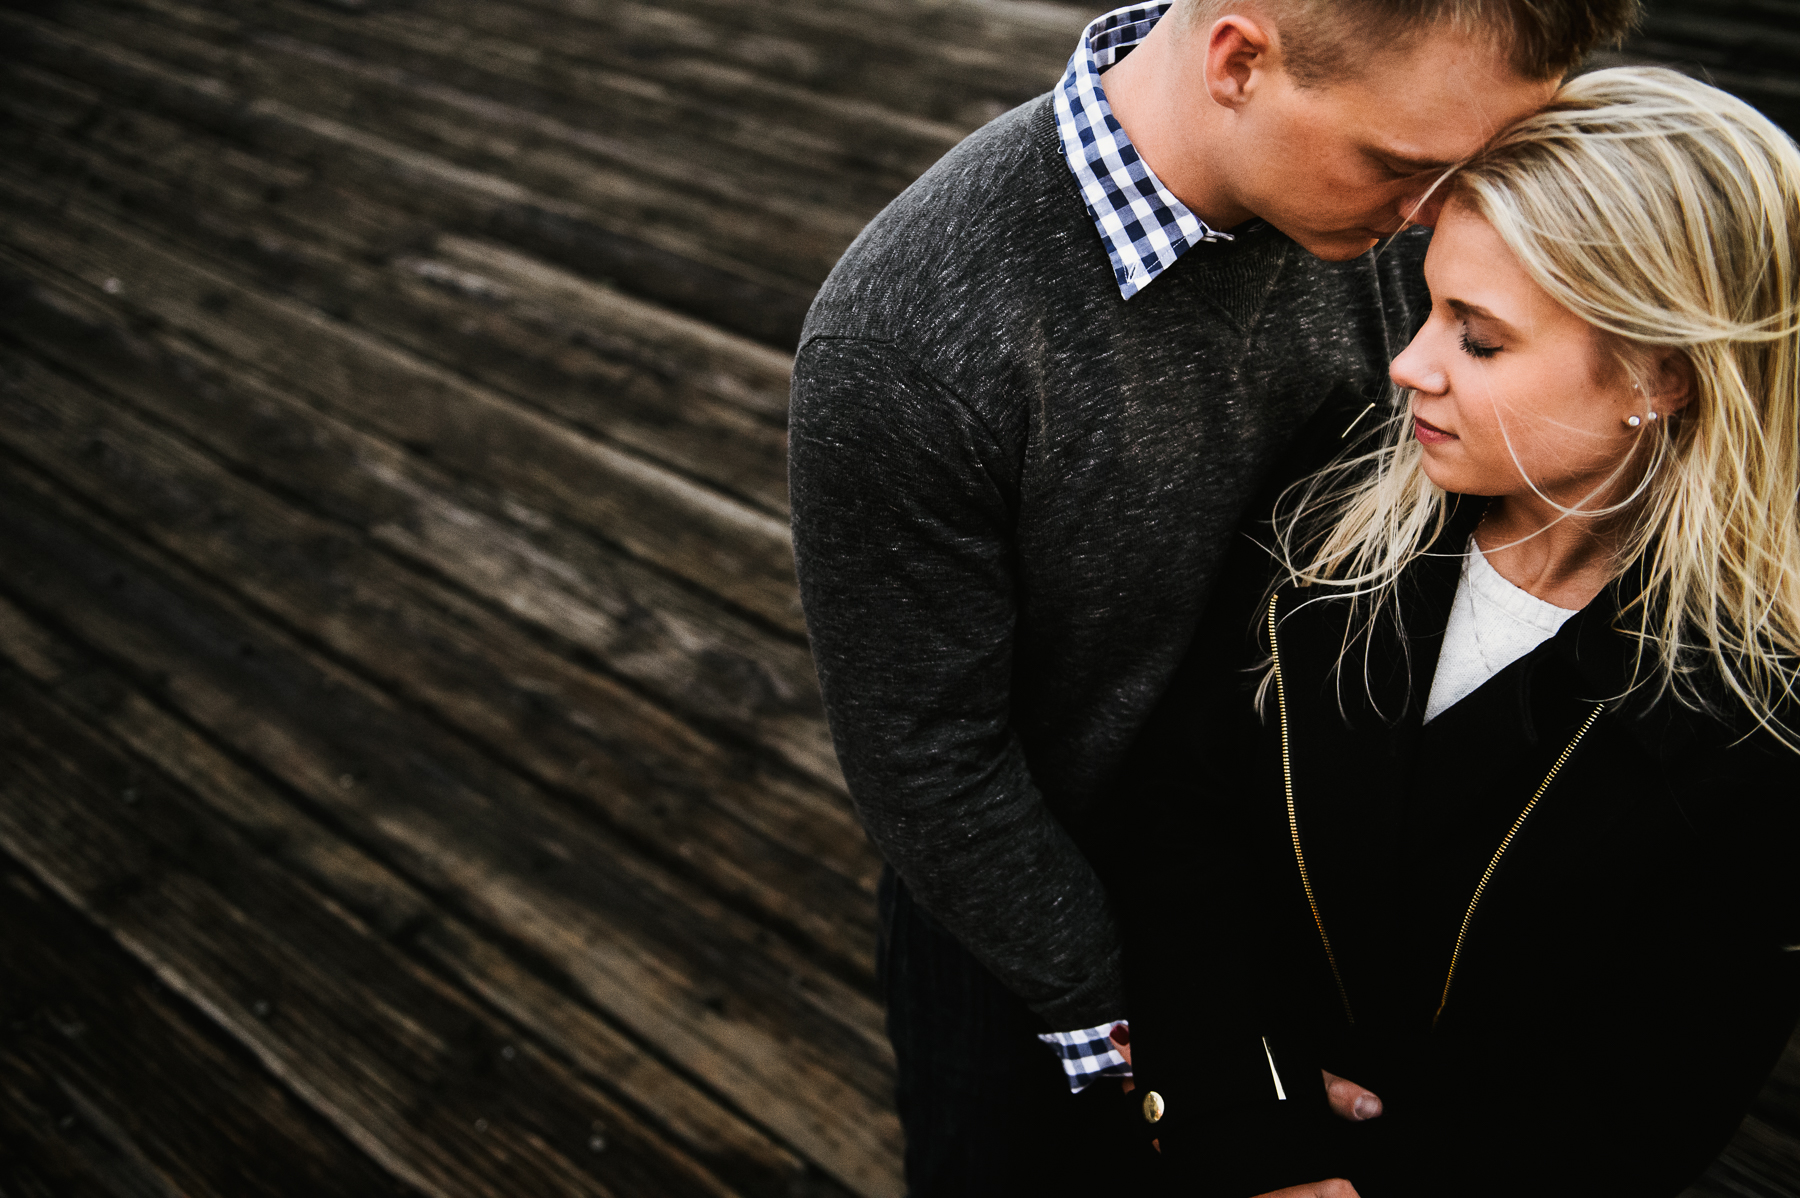 seattle-wedding-photographer-engagement-sessions-best-14